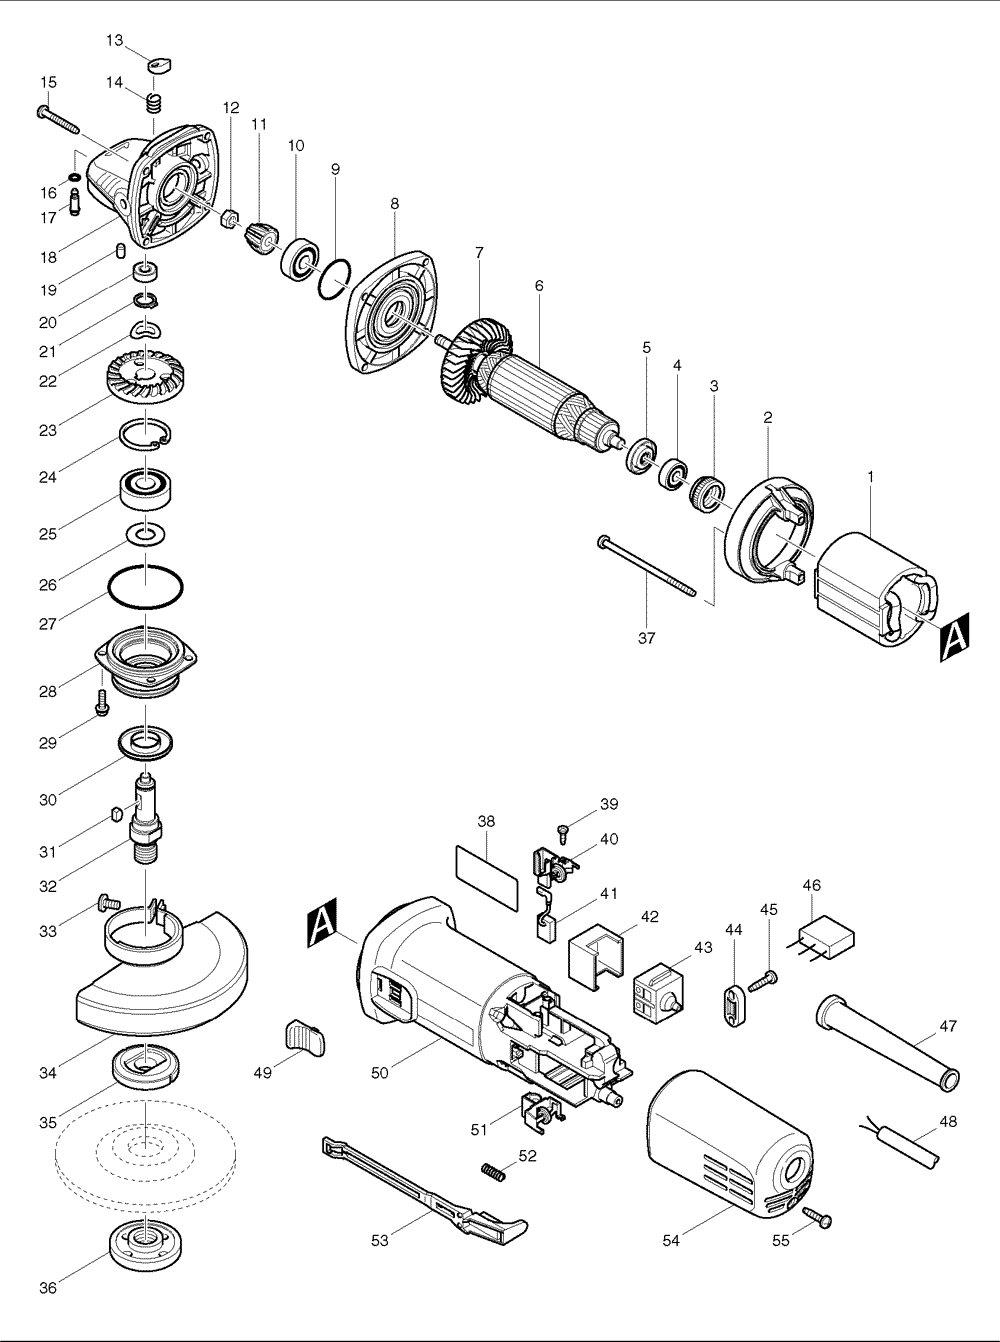 3 phase grinder wiring diagram mini grinder wiring diagram buy makita 9557nb 7.5 amp 4-1/2 inch angle (ac/dc ...